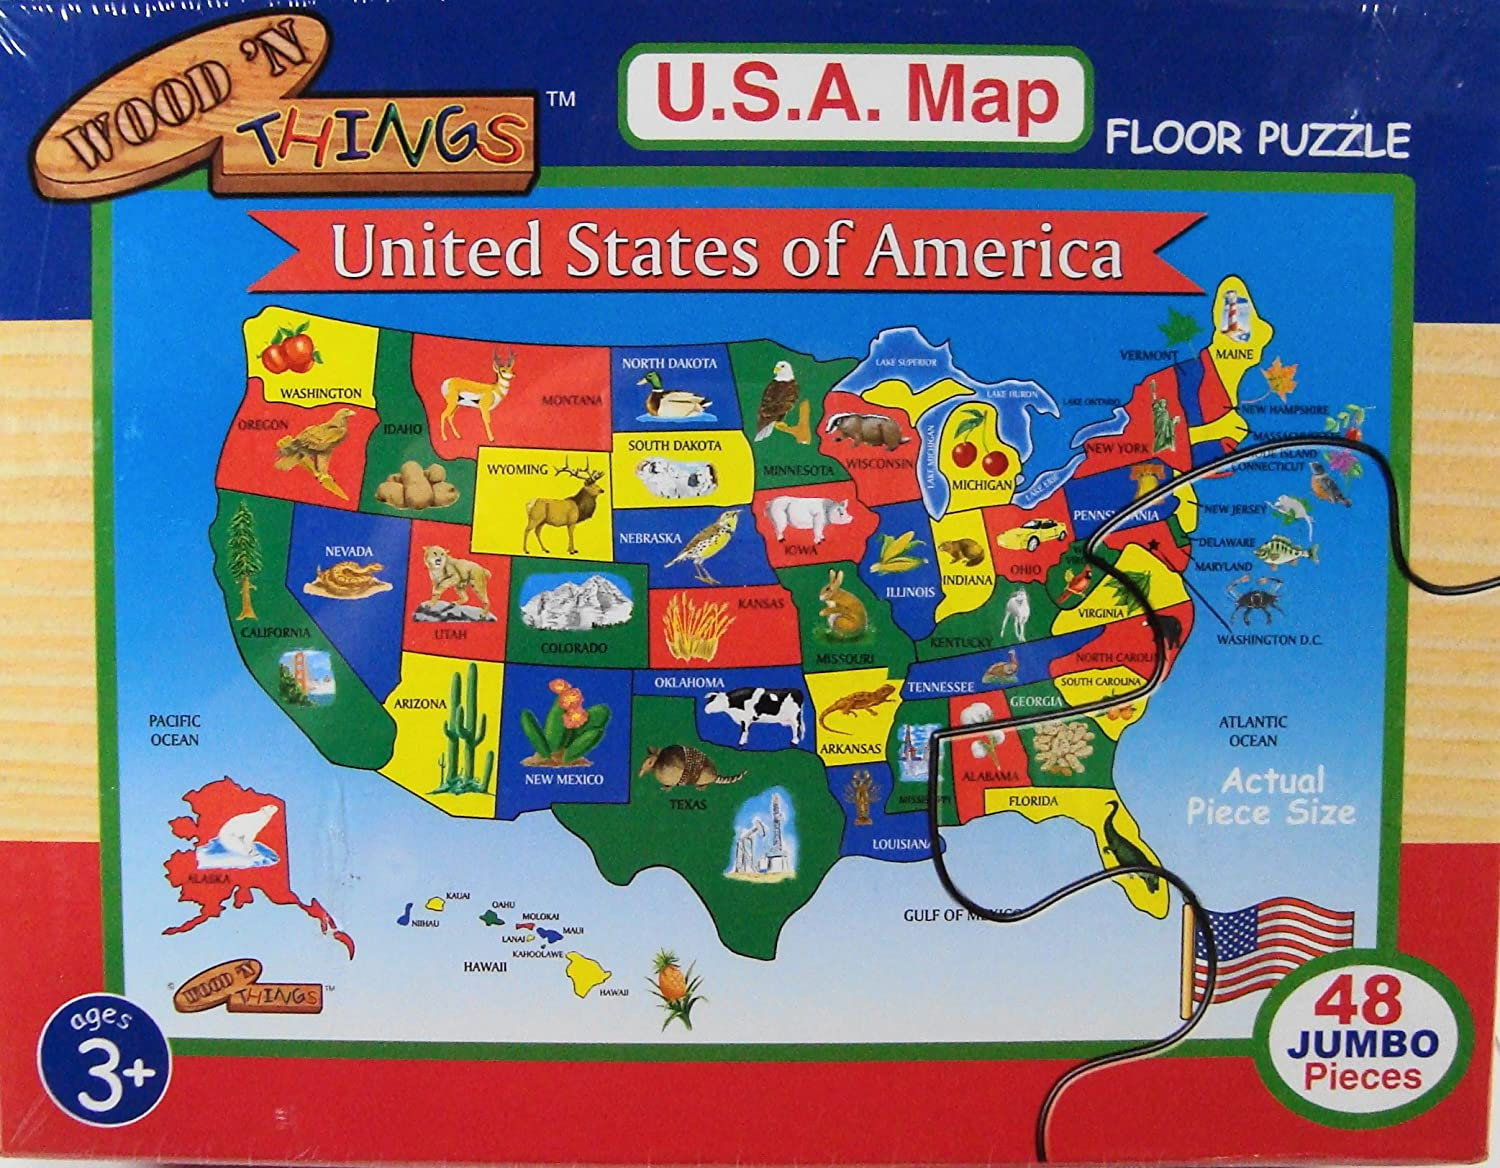 Amazoncom Wood N Things USA Map Floor Puzzle Toys  Games